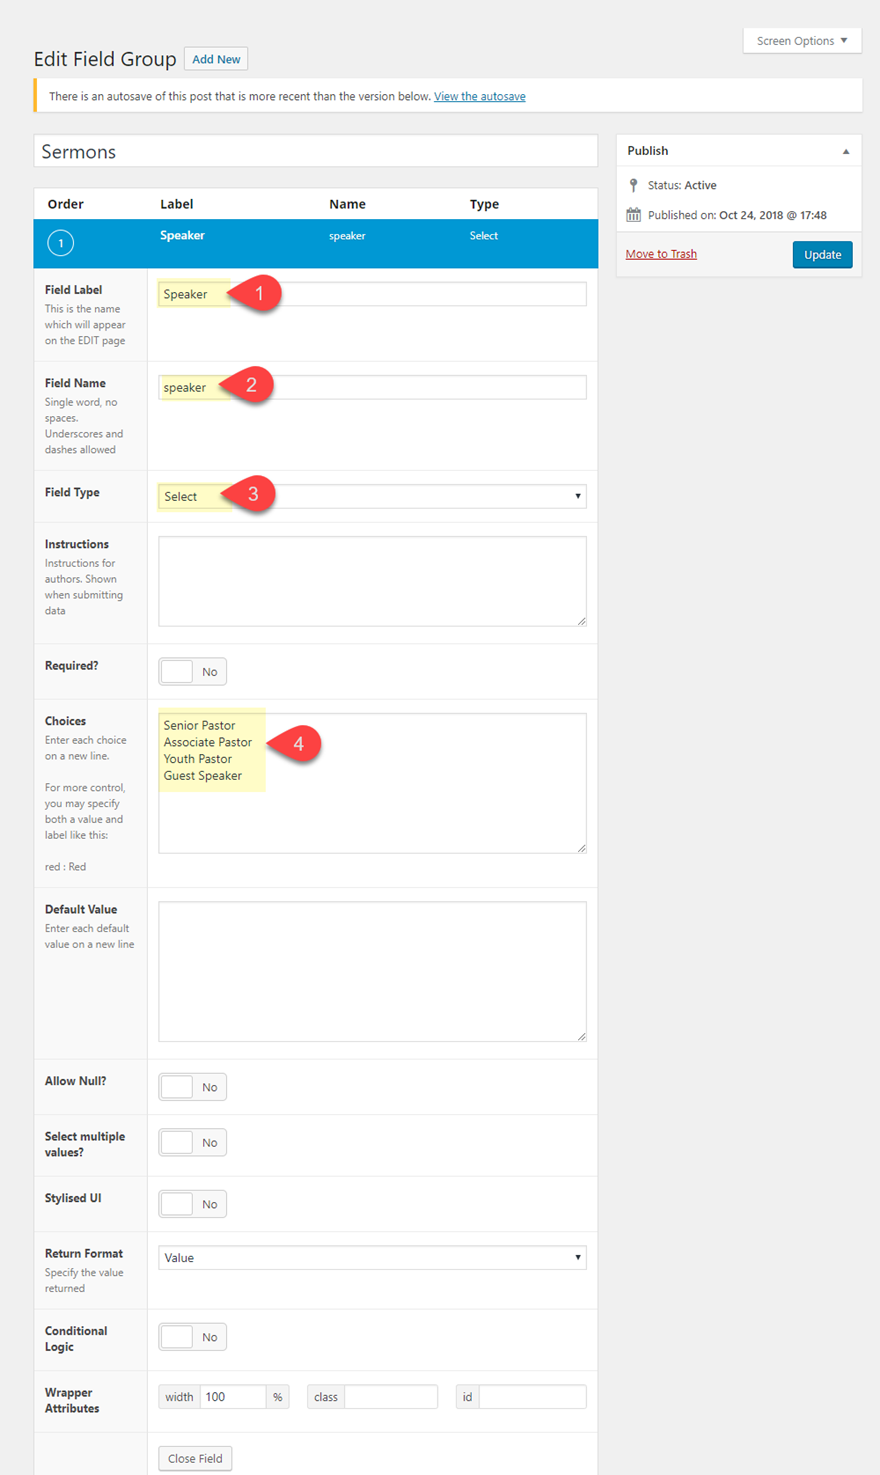 How to Build a Sermon Layout using Custom Fields and Dynamic Content